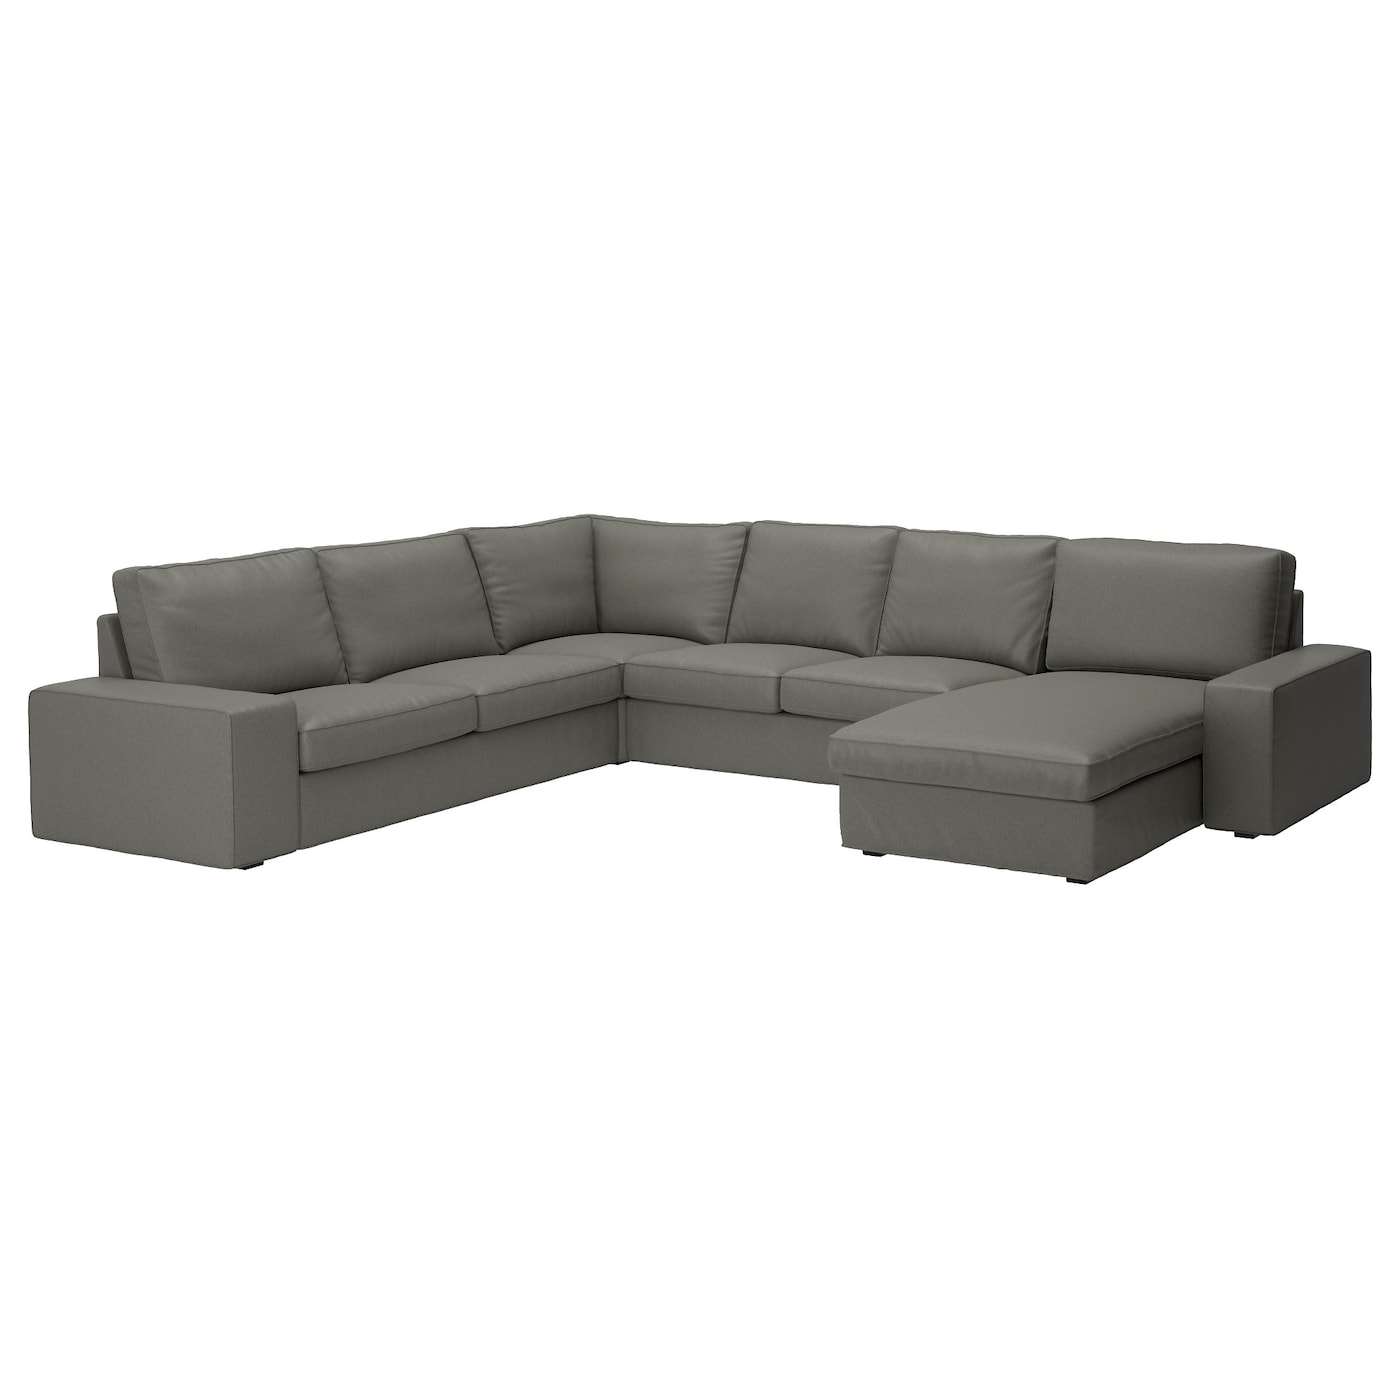 Kivik corner sofa 2 2 with chaise longue borred grey green ikea - Chaise longue jardin ikea ...